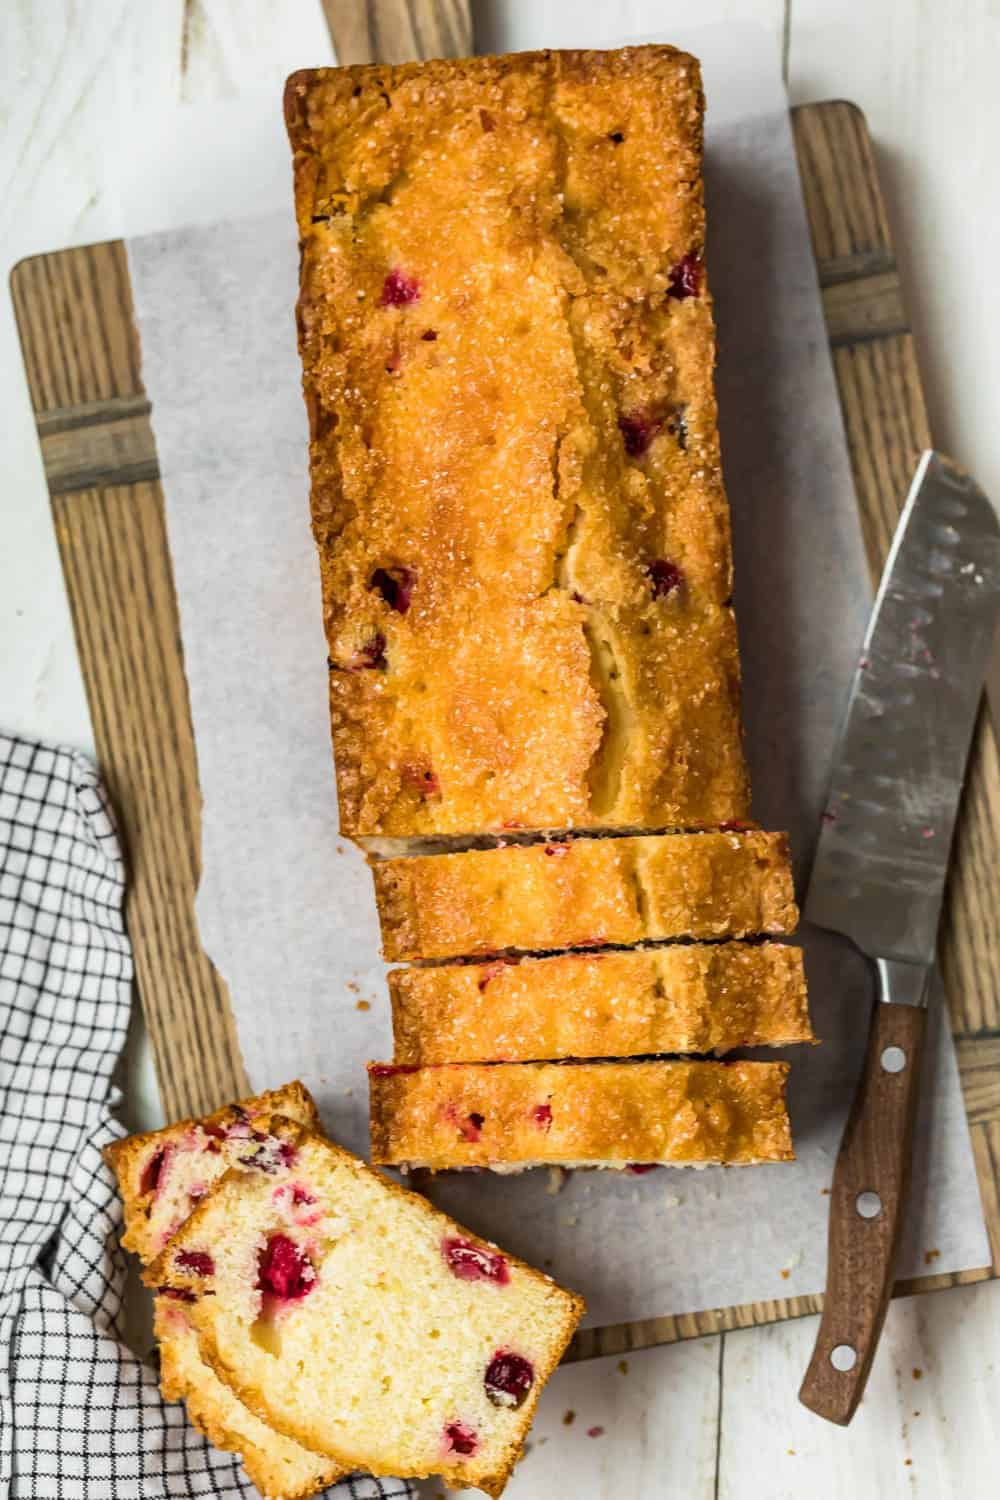 Glazed Lemon Cranberry Bread cut into slices